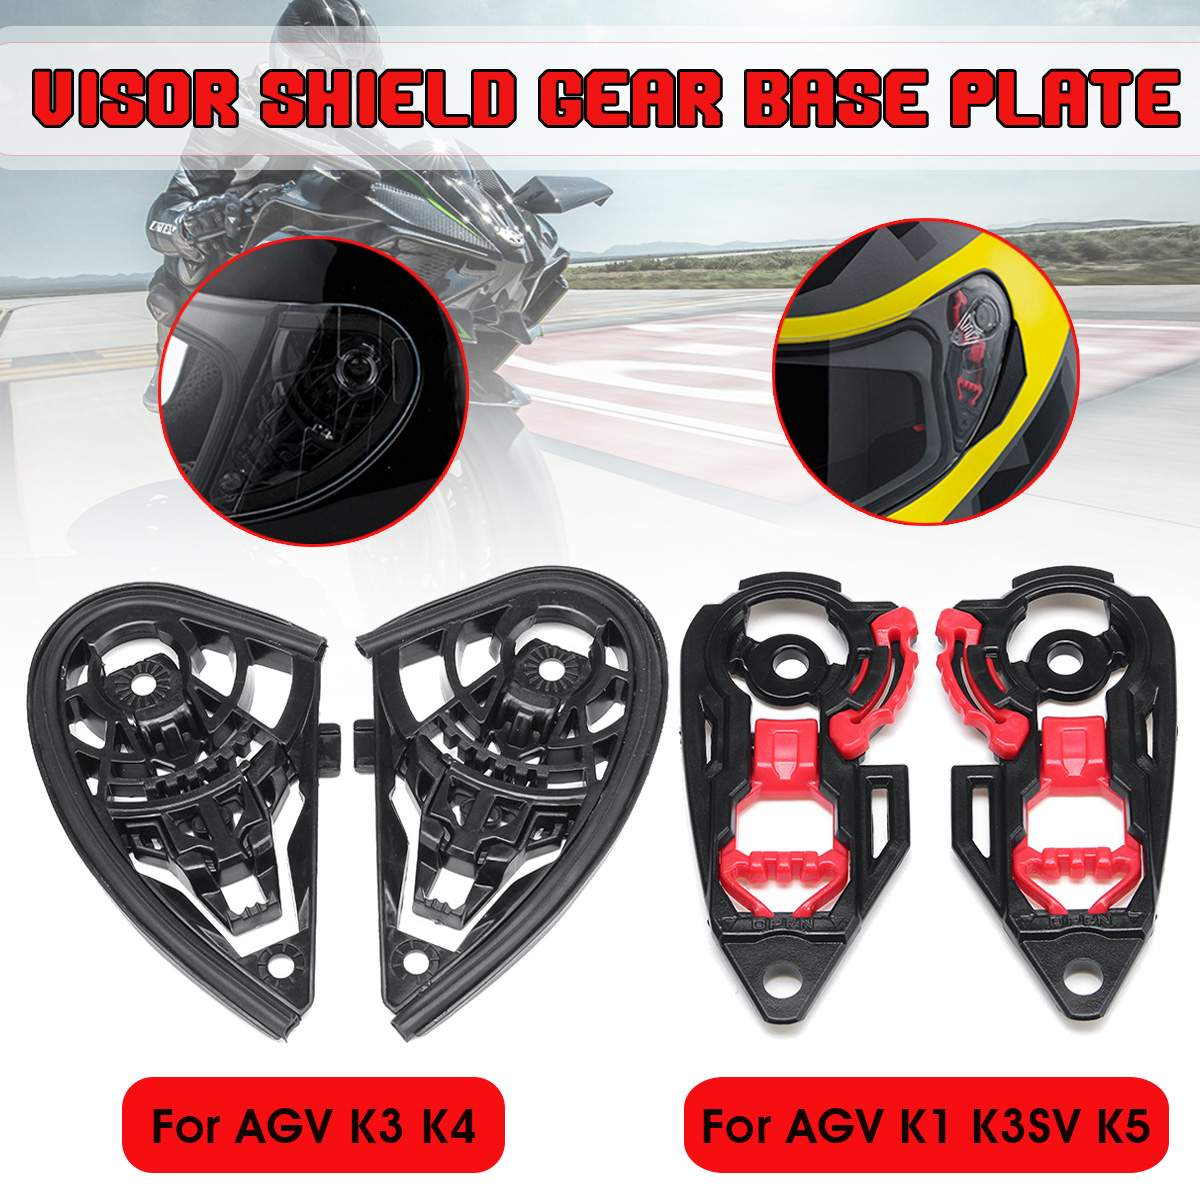 Pair Motorcycle Helmet Visor Shield Gear Base Plate Lens Holder For AGV K1 K3SV K5 / K3 K4Pair Motorcycle Helmet Visor Shield Gear Base Plate Lens Holder For AGV K1 K3SV K5 / K3 K4